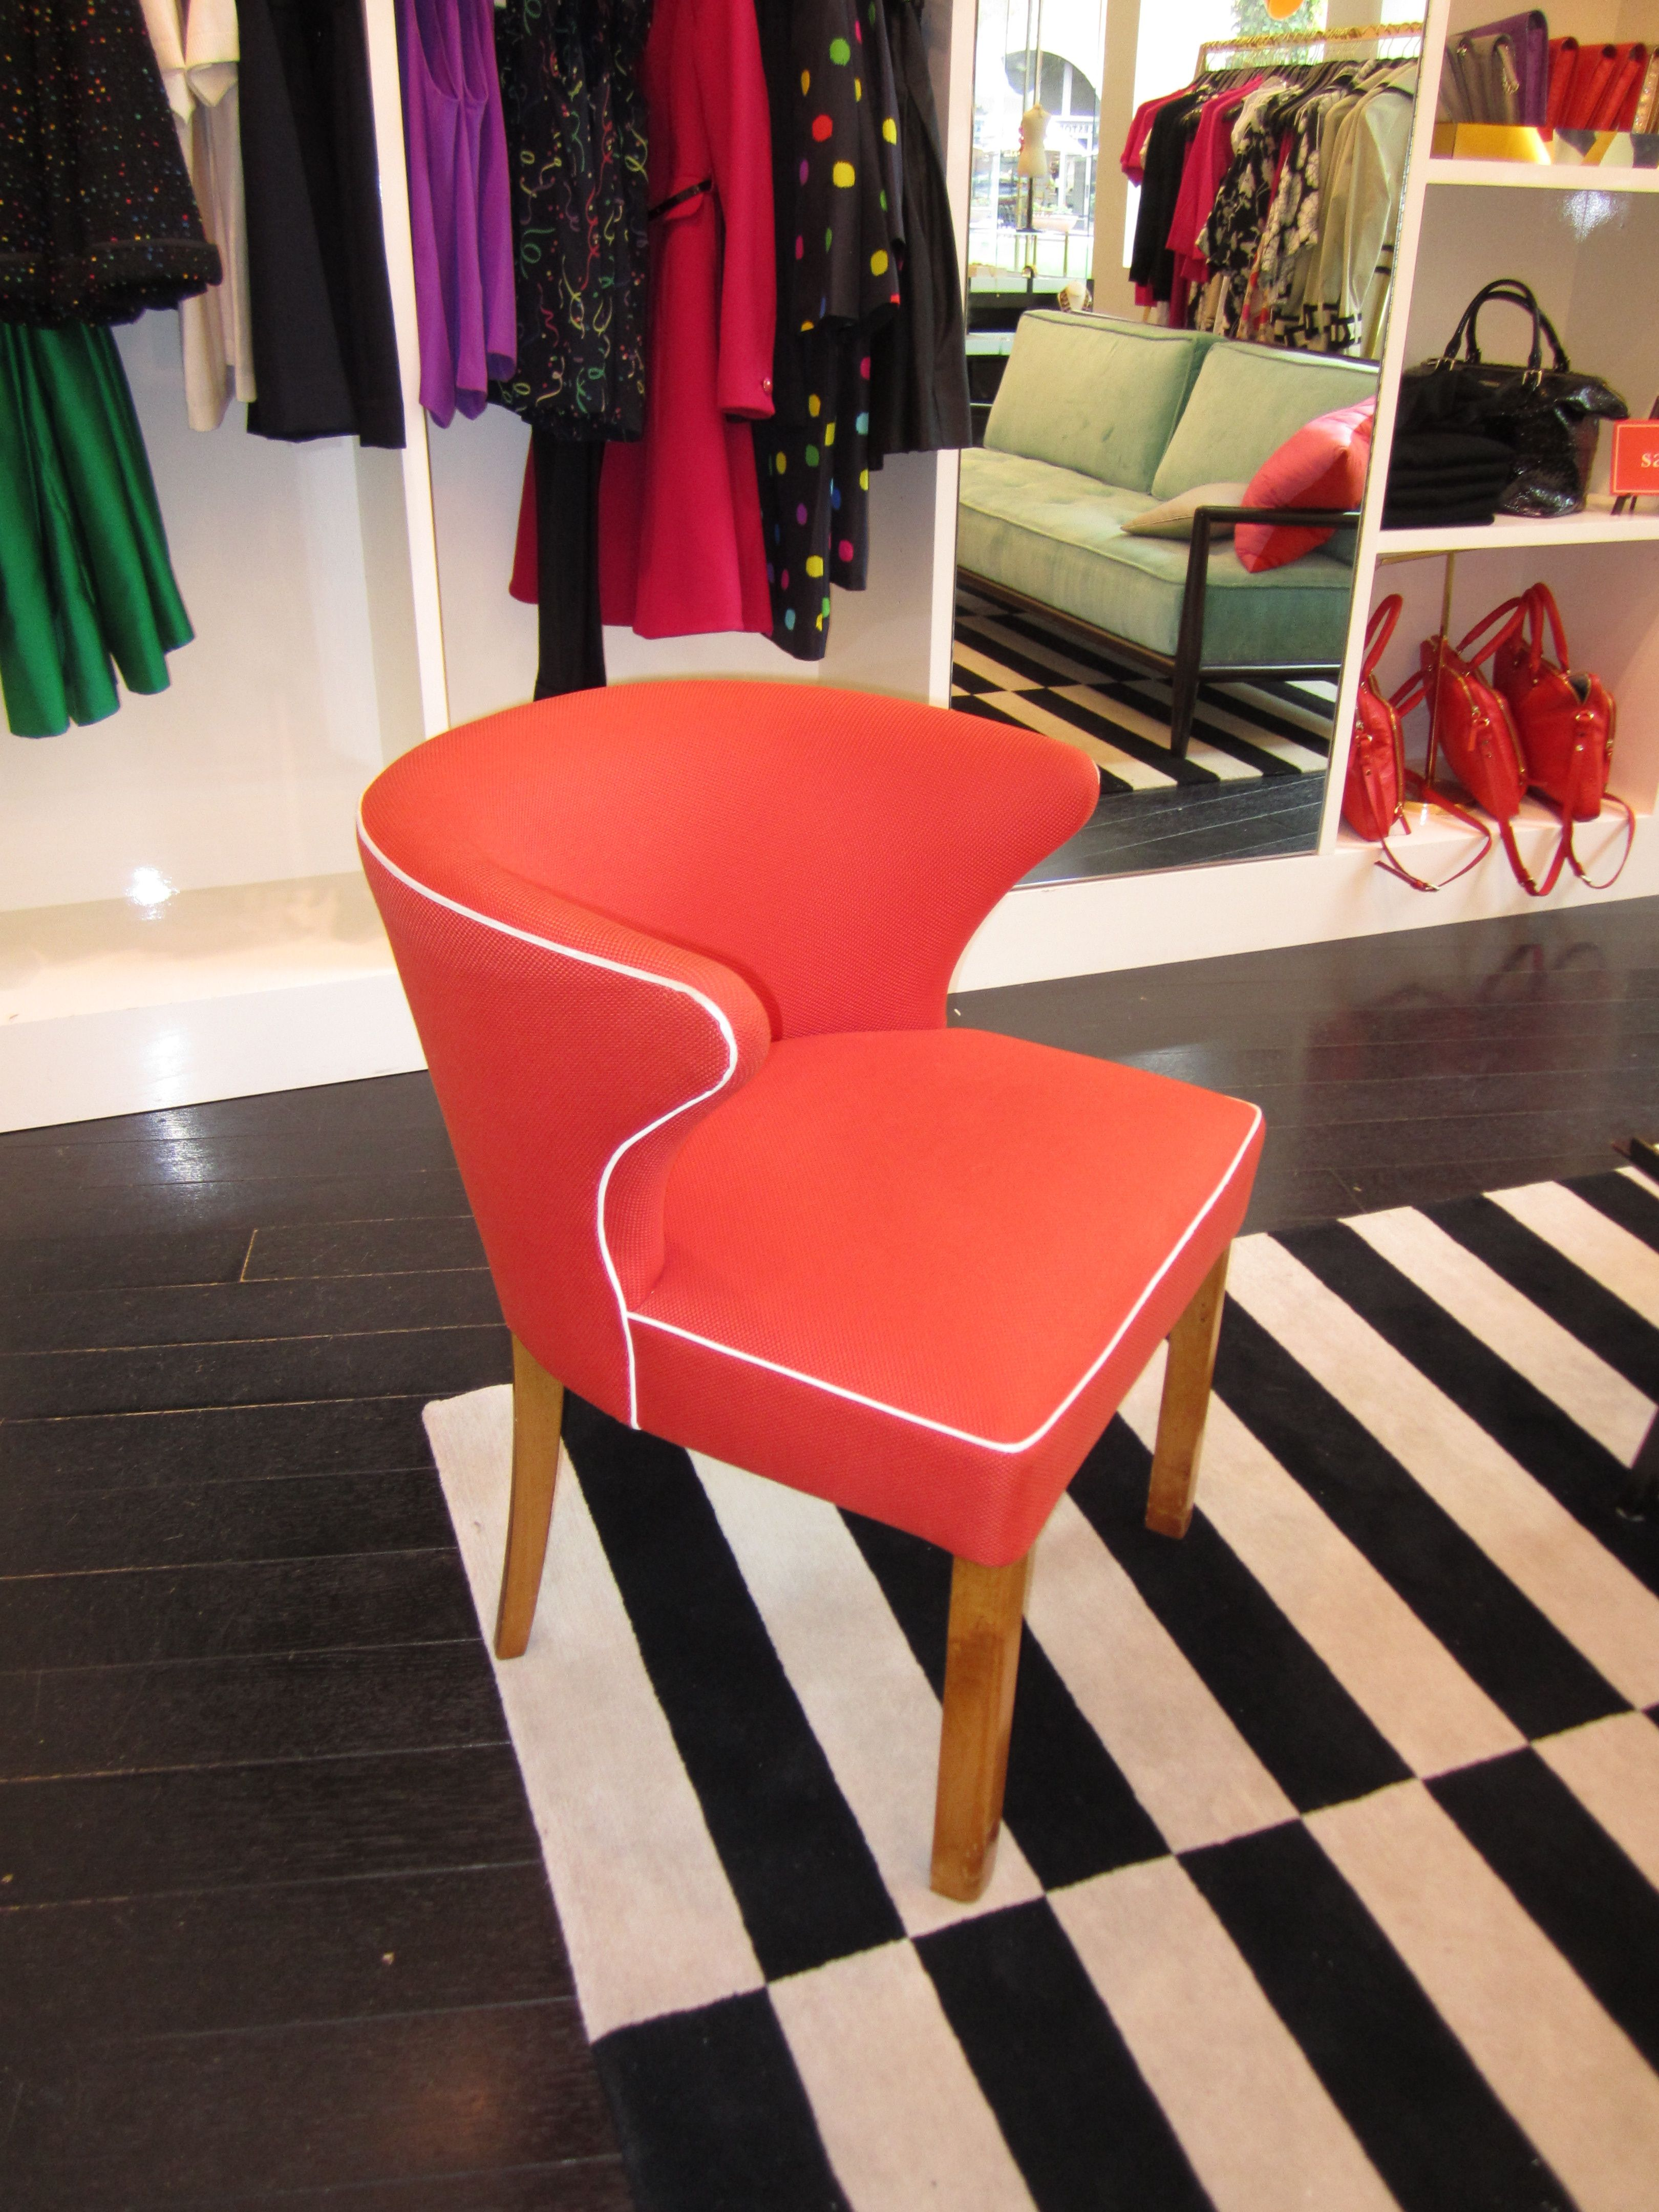 Chair In Kate Spade Store In Southcoast Plaza Love The